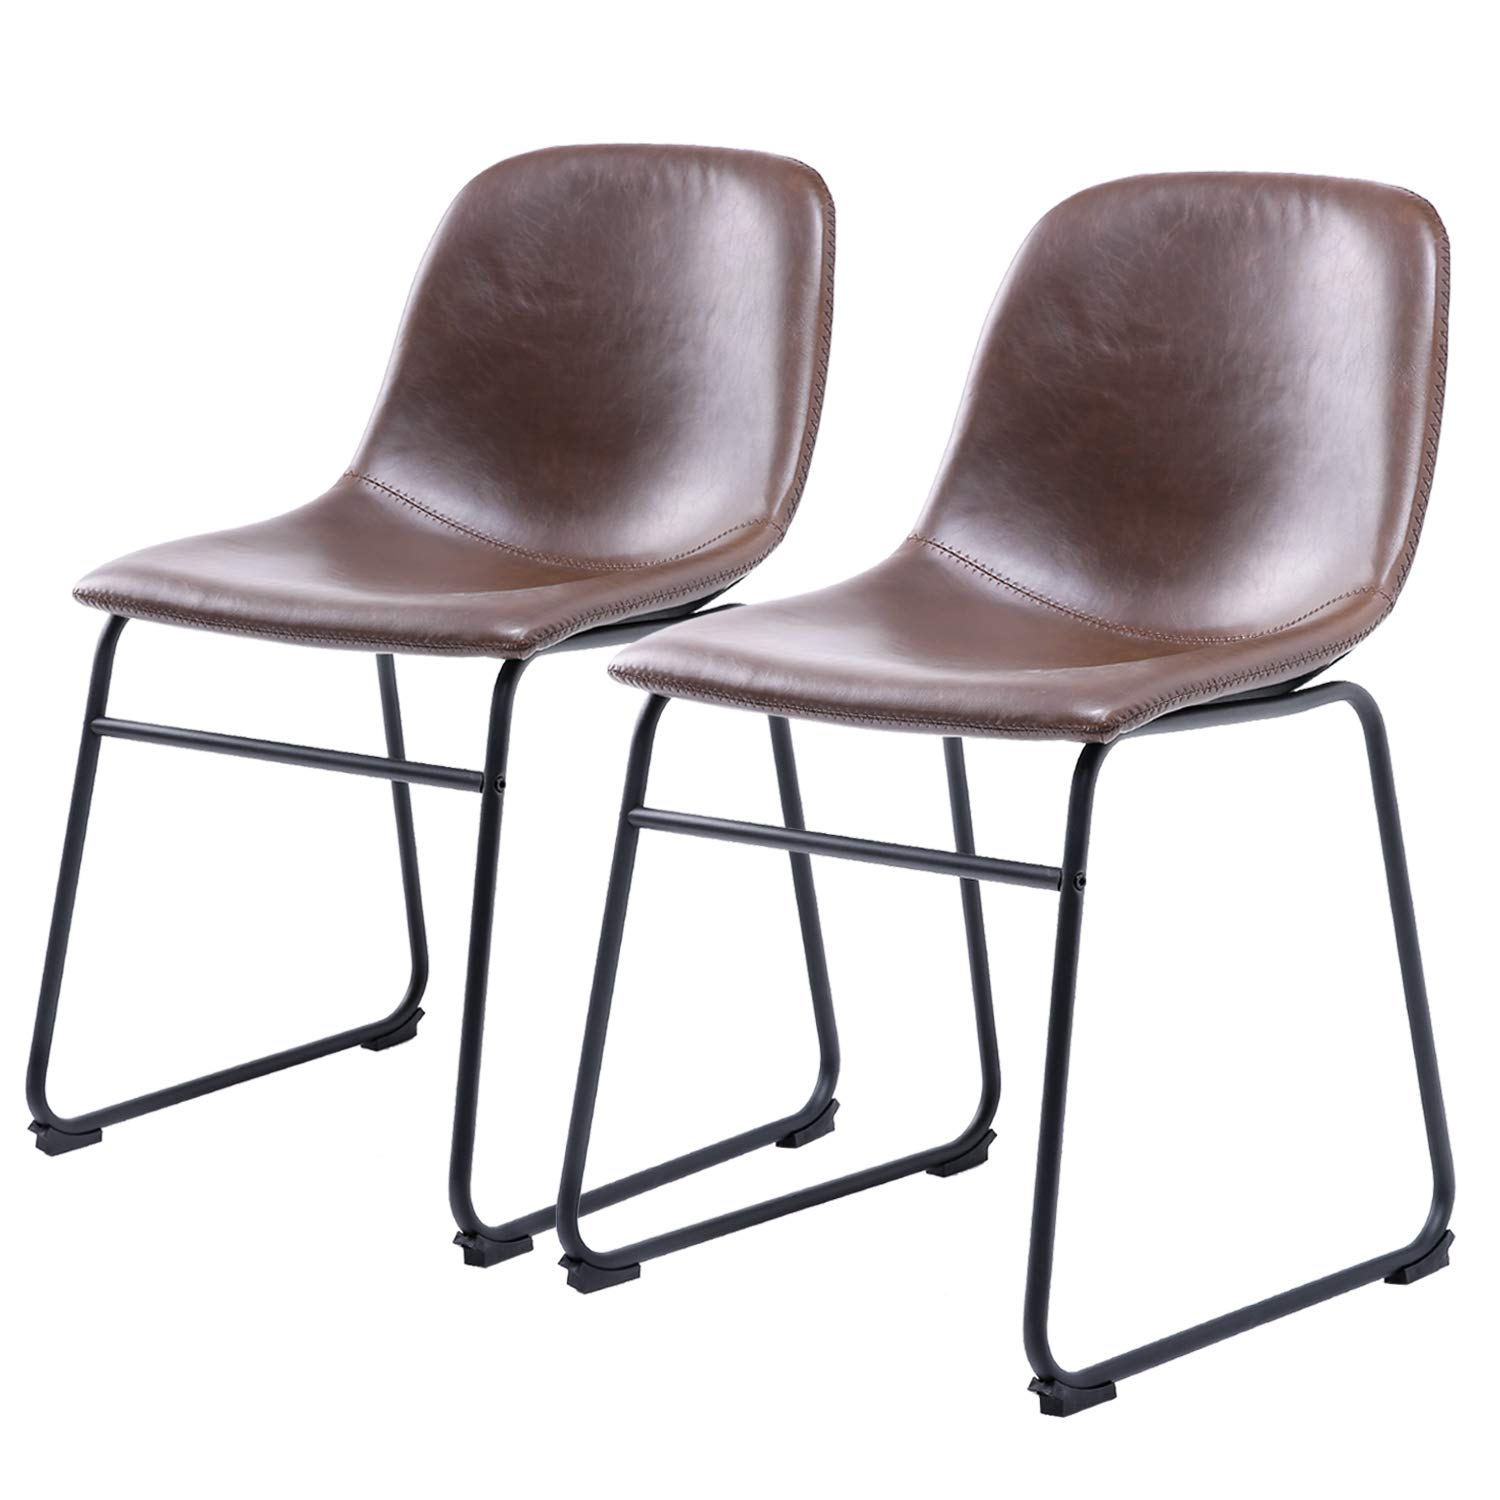 Rfiver Centiar Pu Leather Dining Room Chairs Set of 2, Vintage Kitchen Side Chairs Mid Century Modern Style with Upholstered Seat and Metal Legs, Brown BS1001